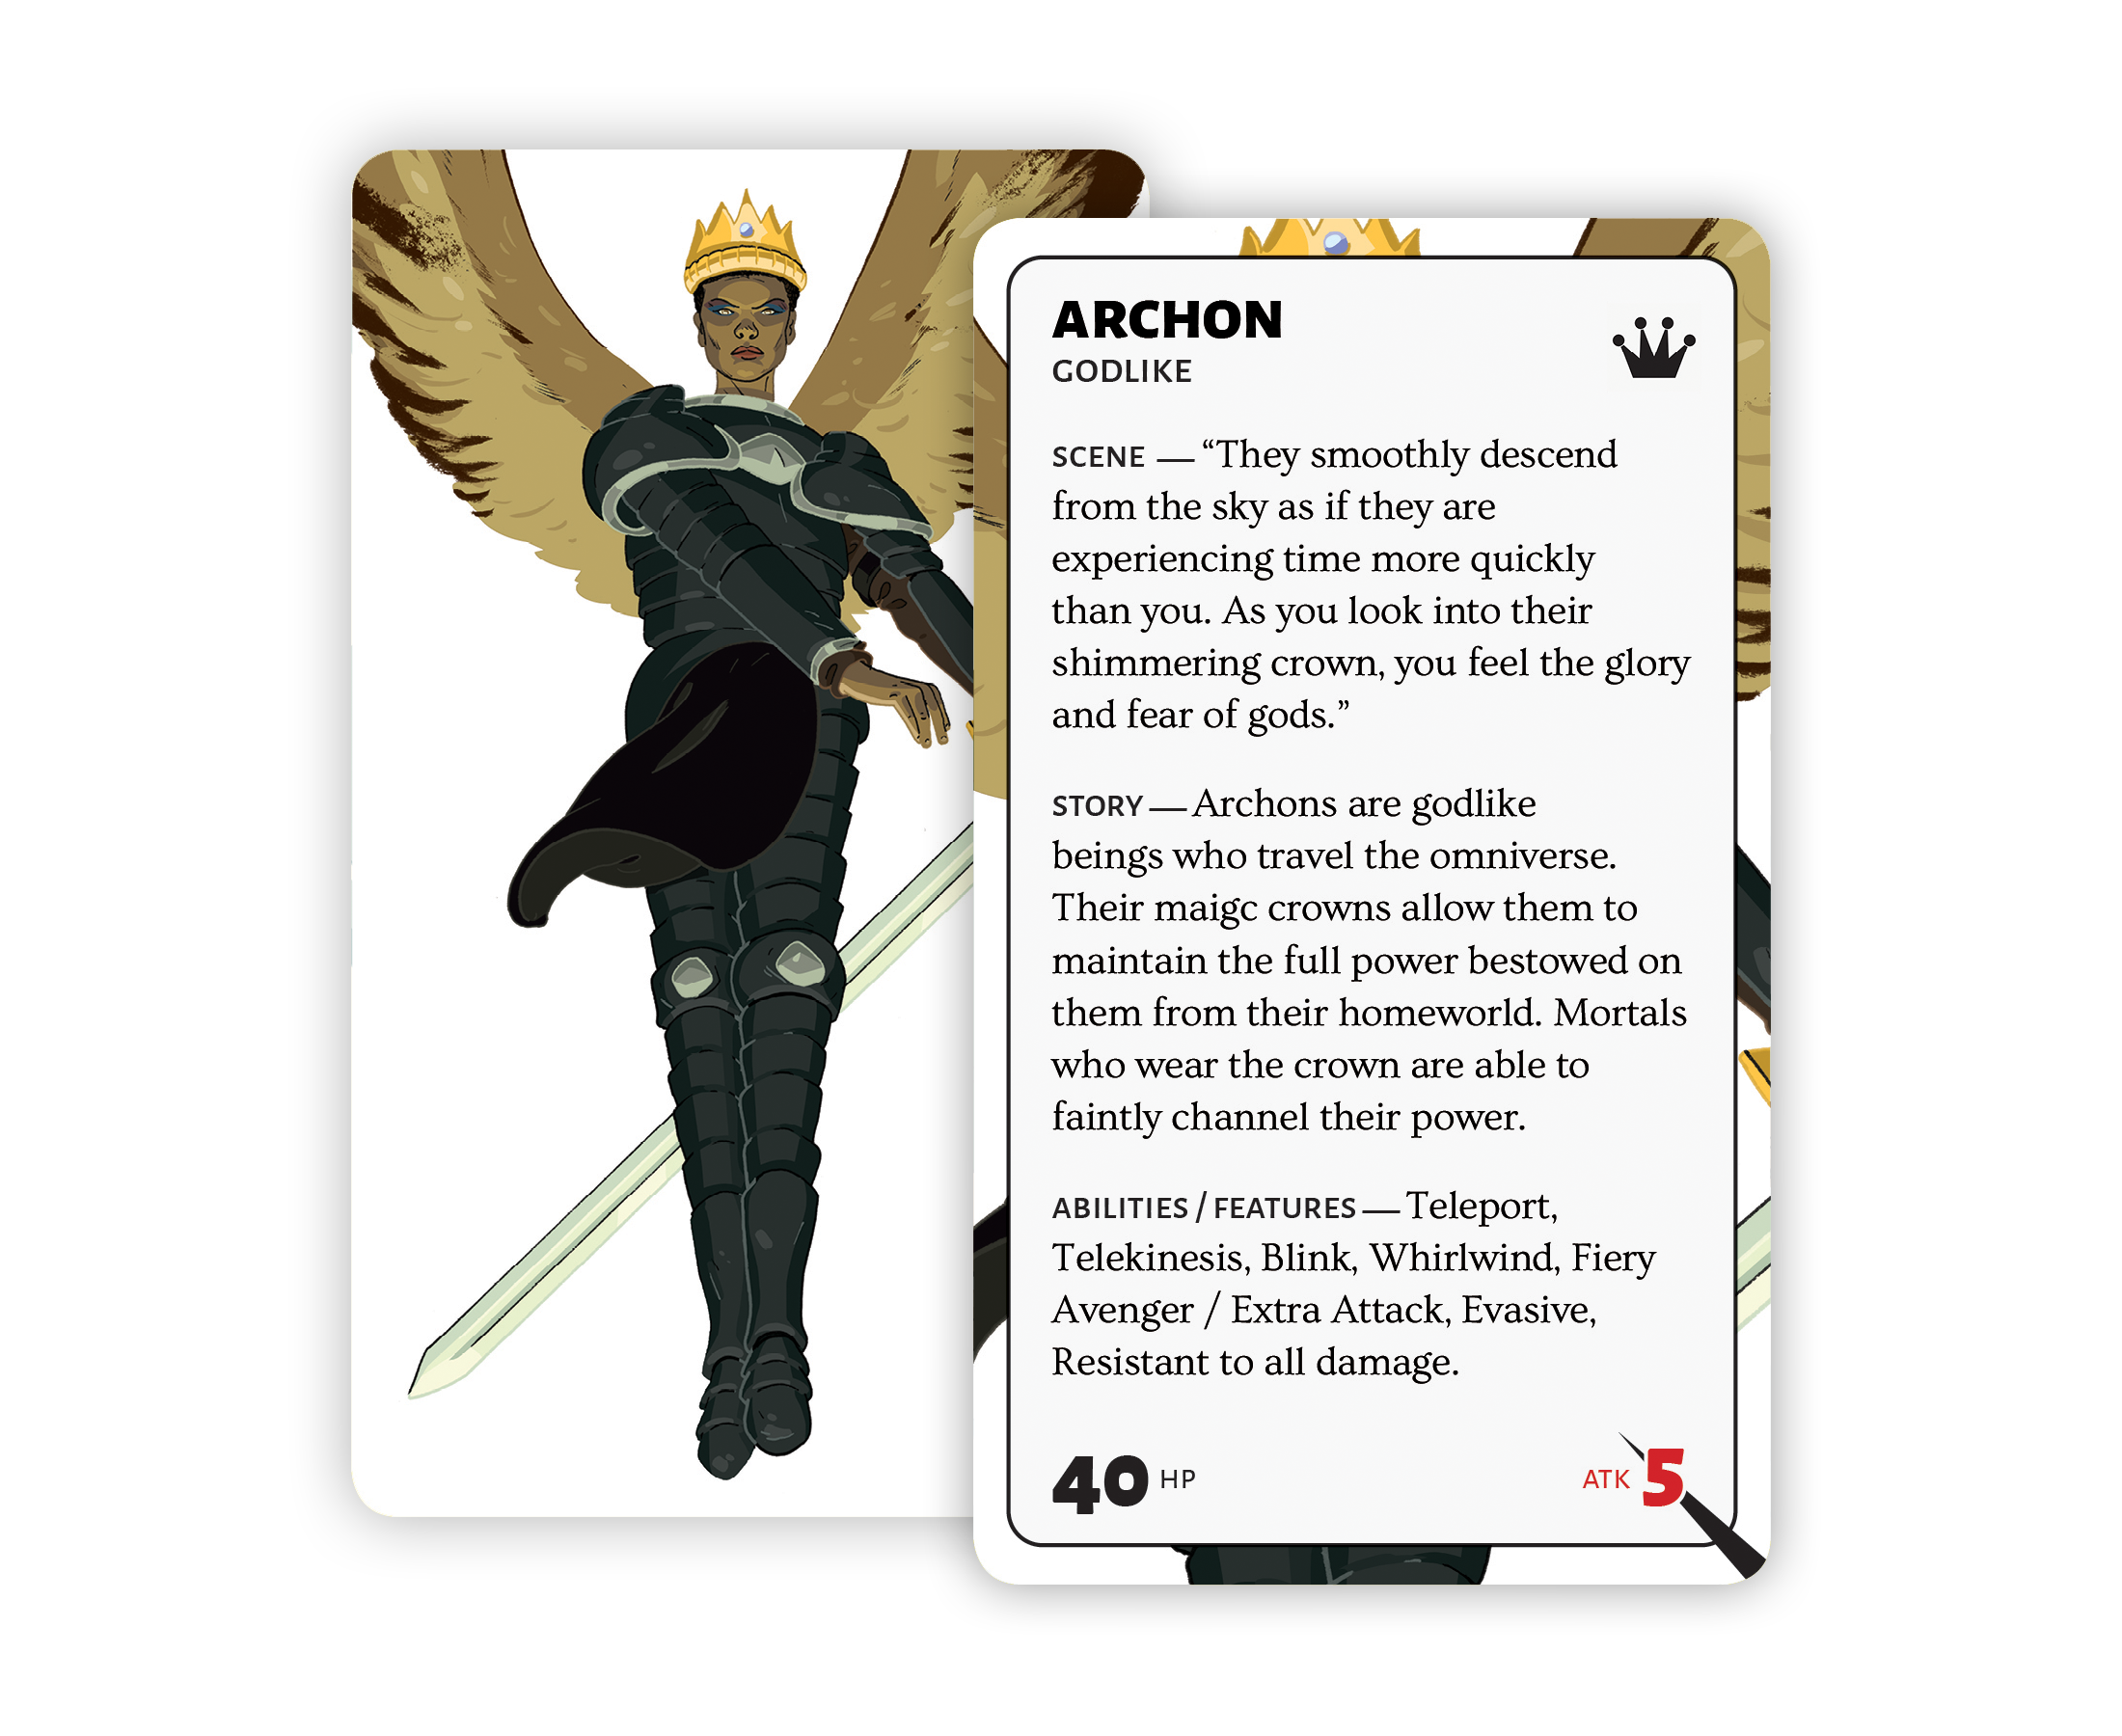 Archons are godlike beings who travel the omniverse. Their maigc crowns allow them to maintain their full powers.